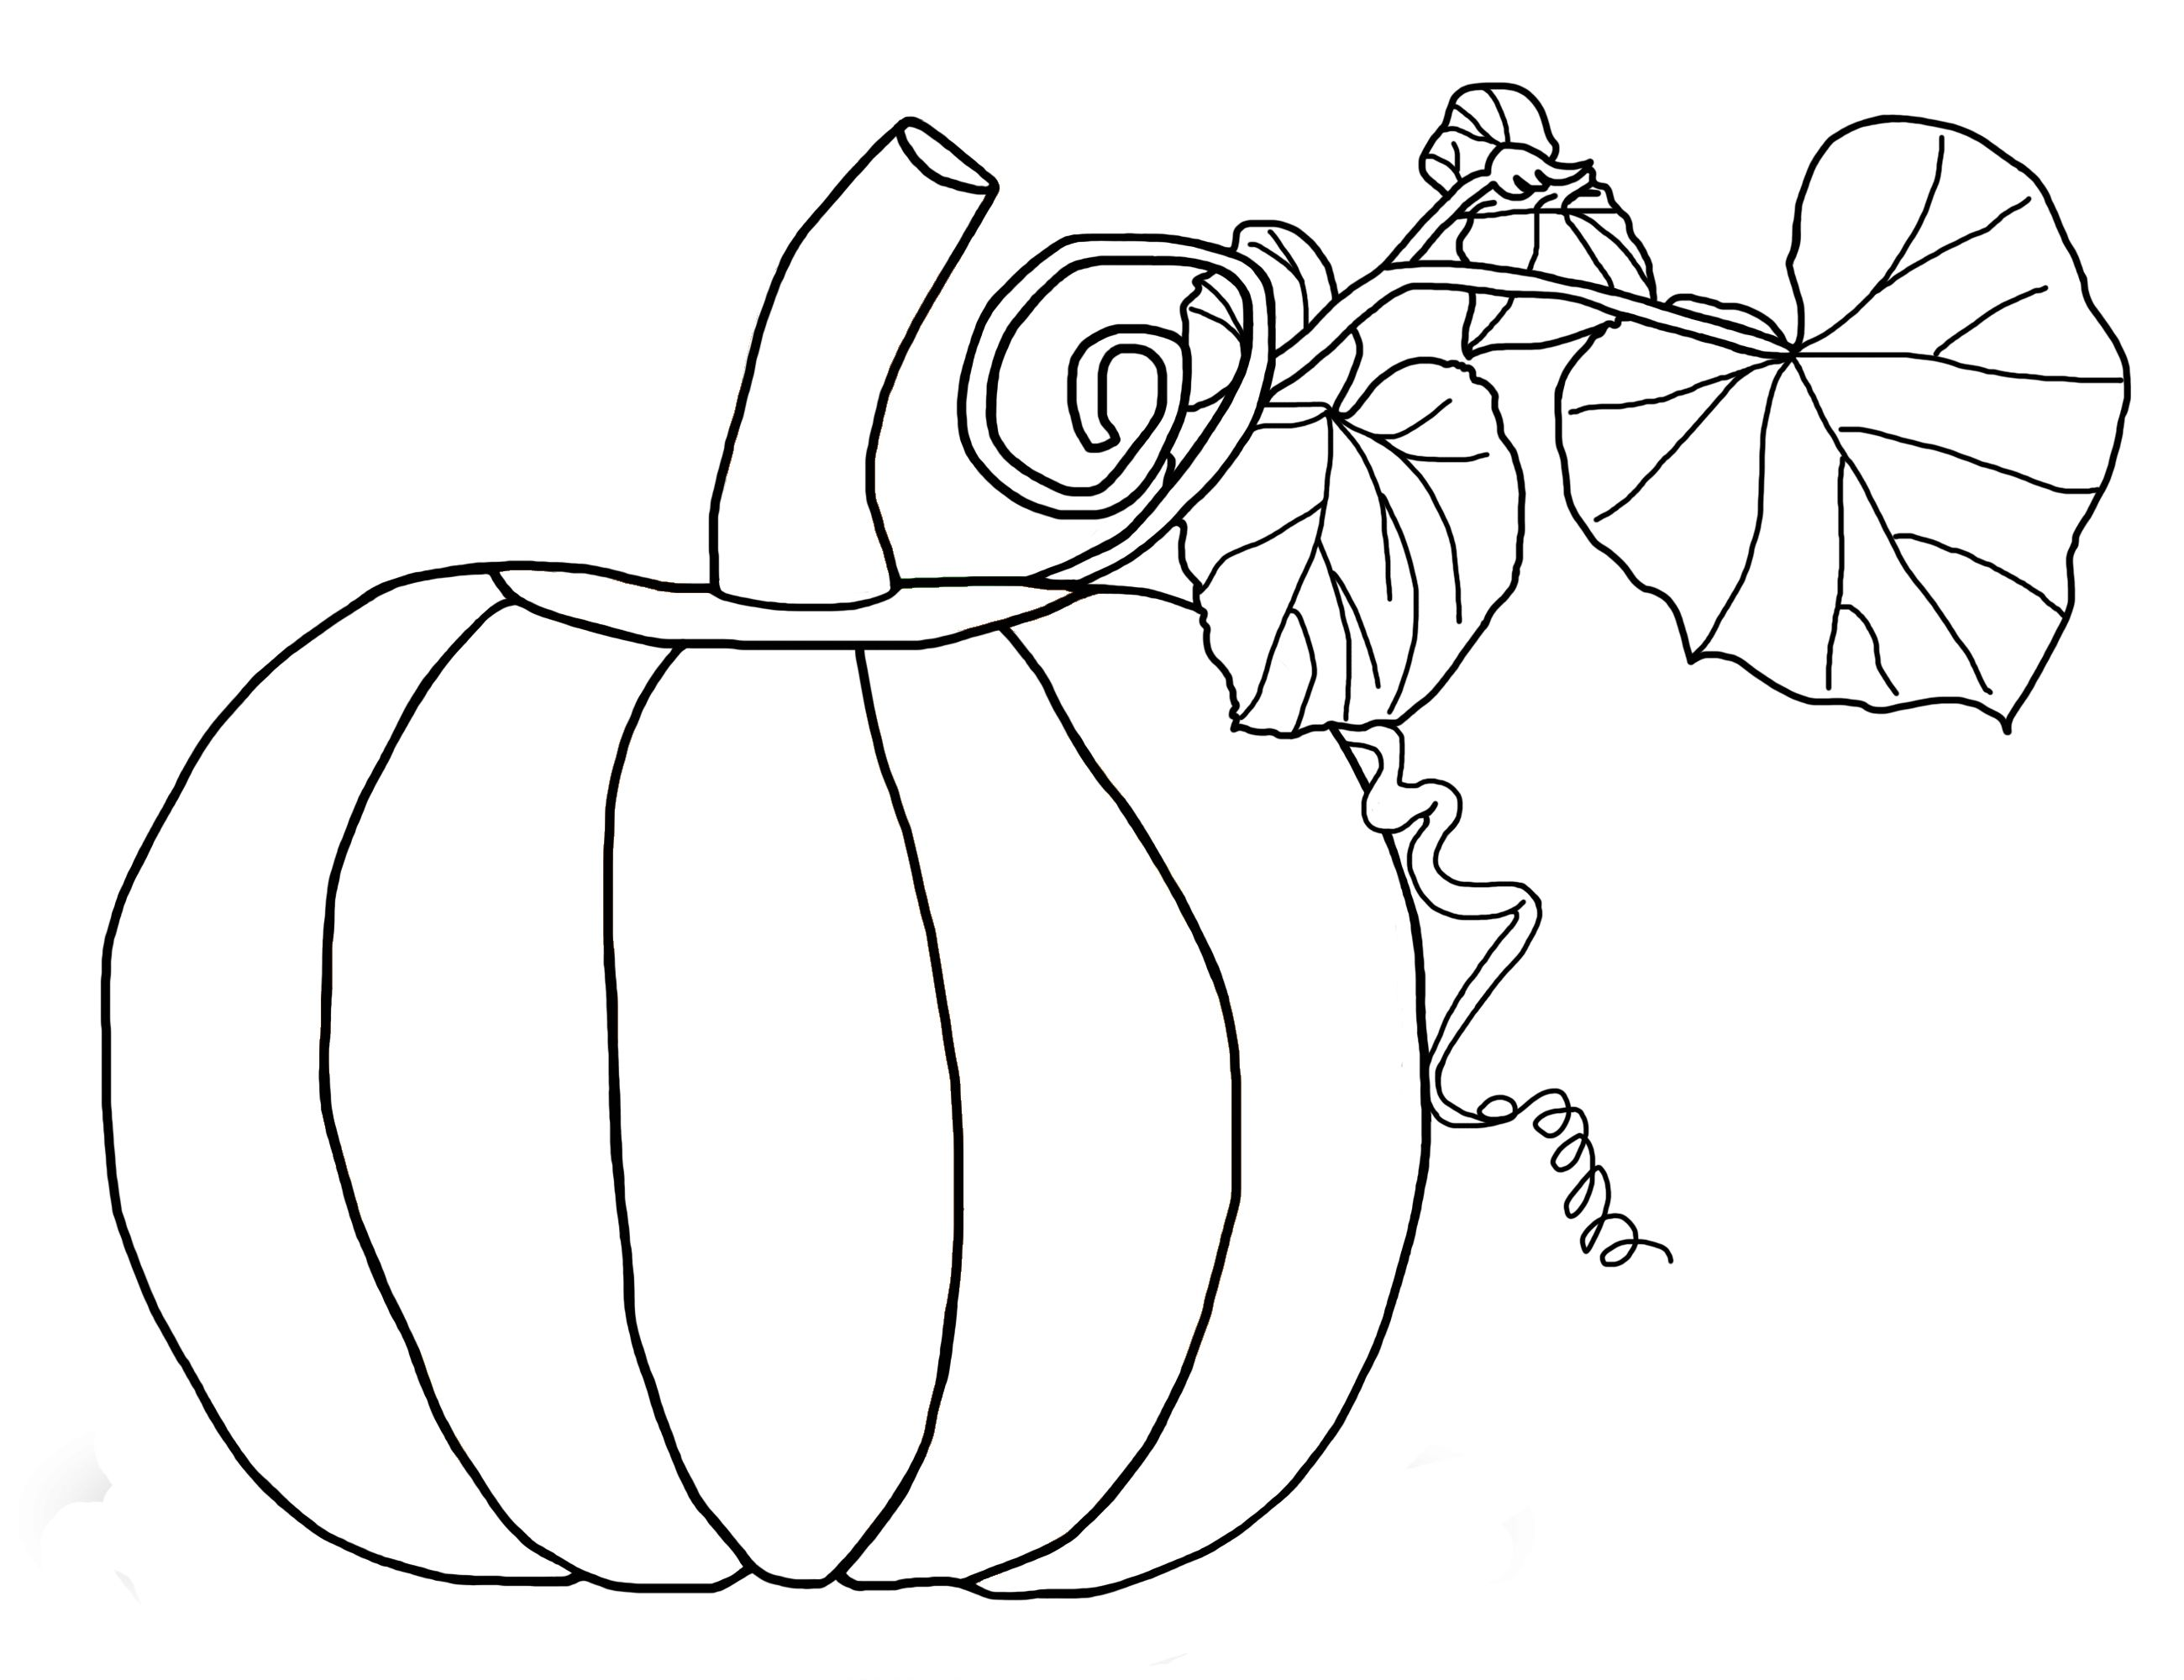 2600x2000 Big Pumpkin And Leaves Coloring Pages Free Printable For Kids